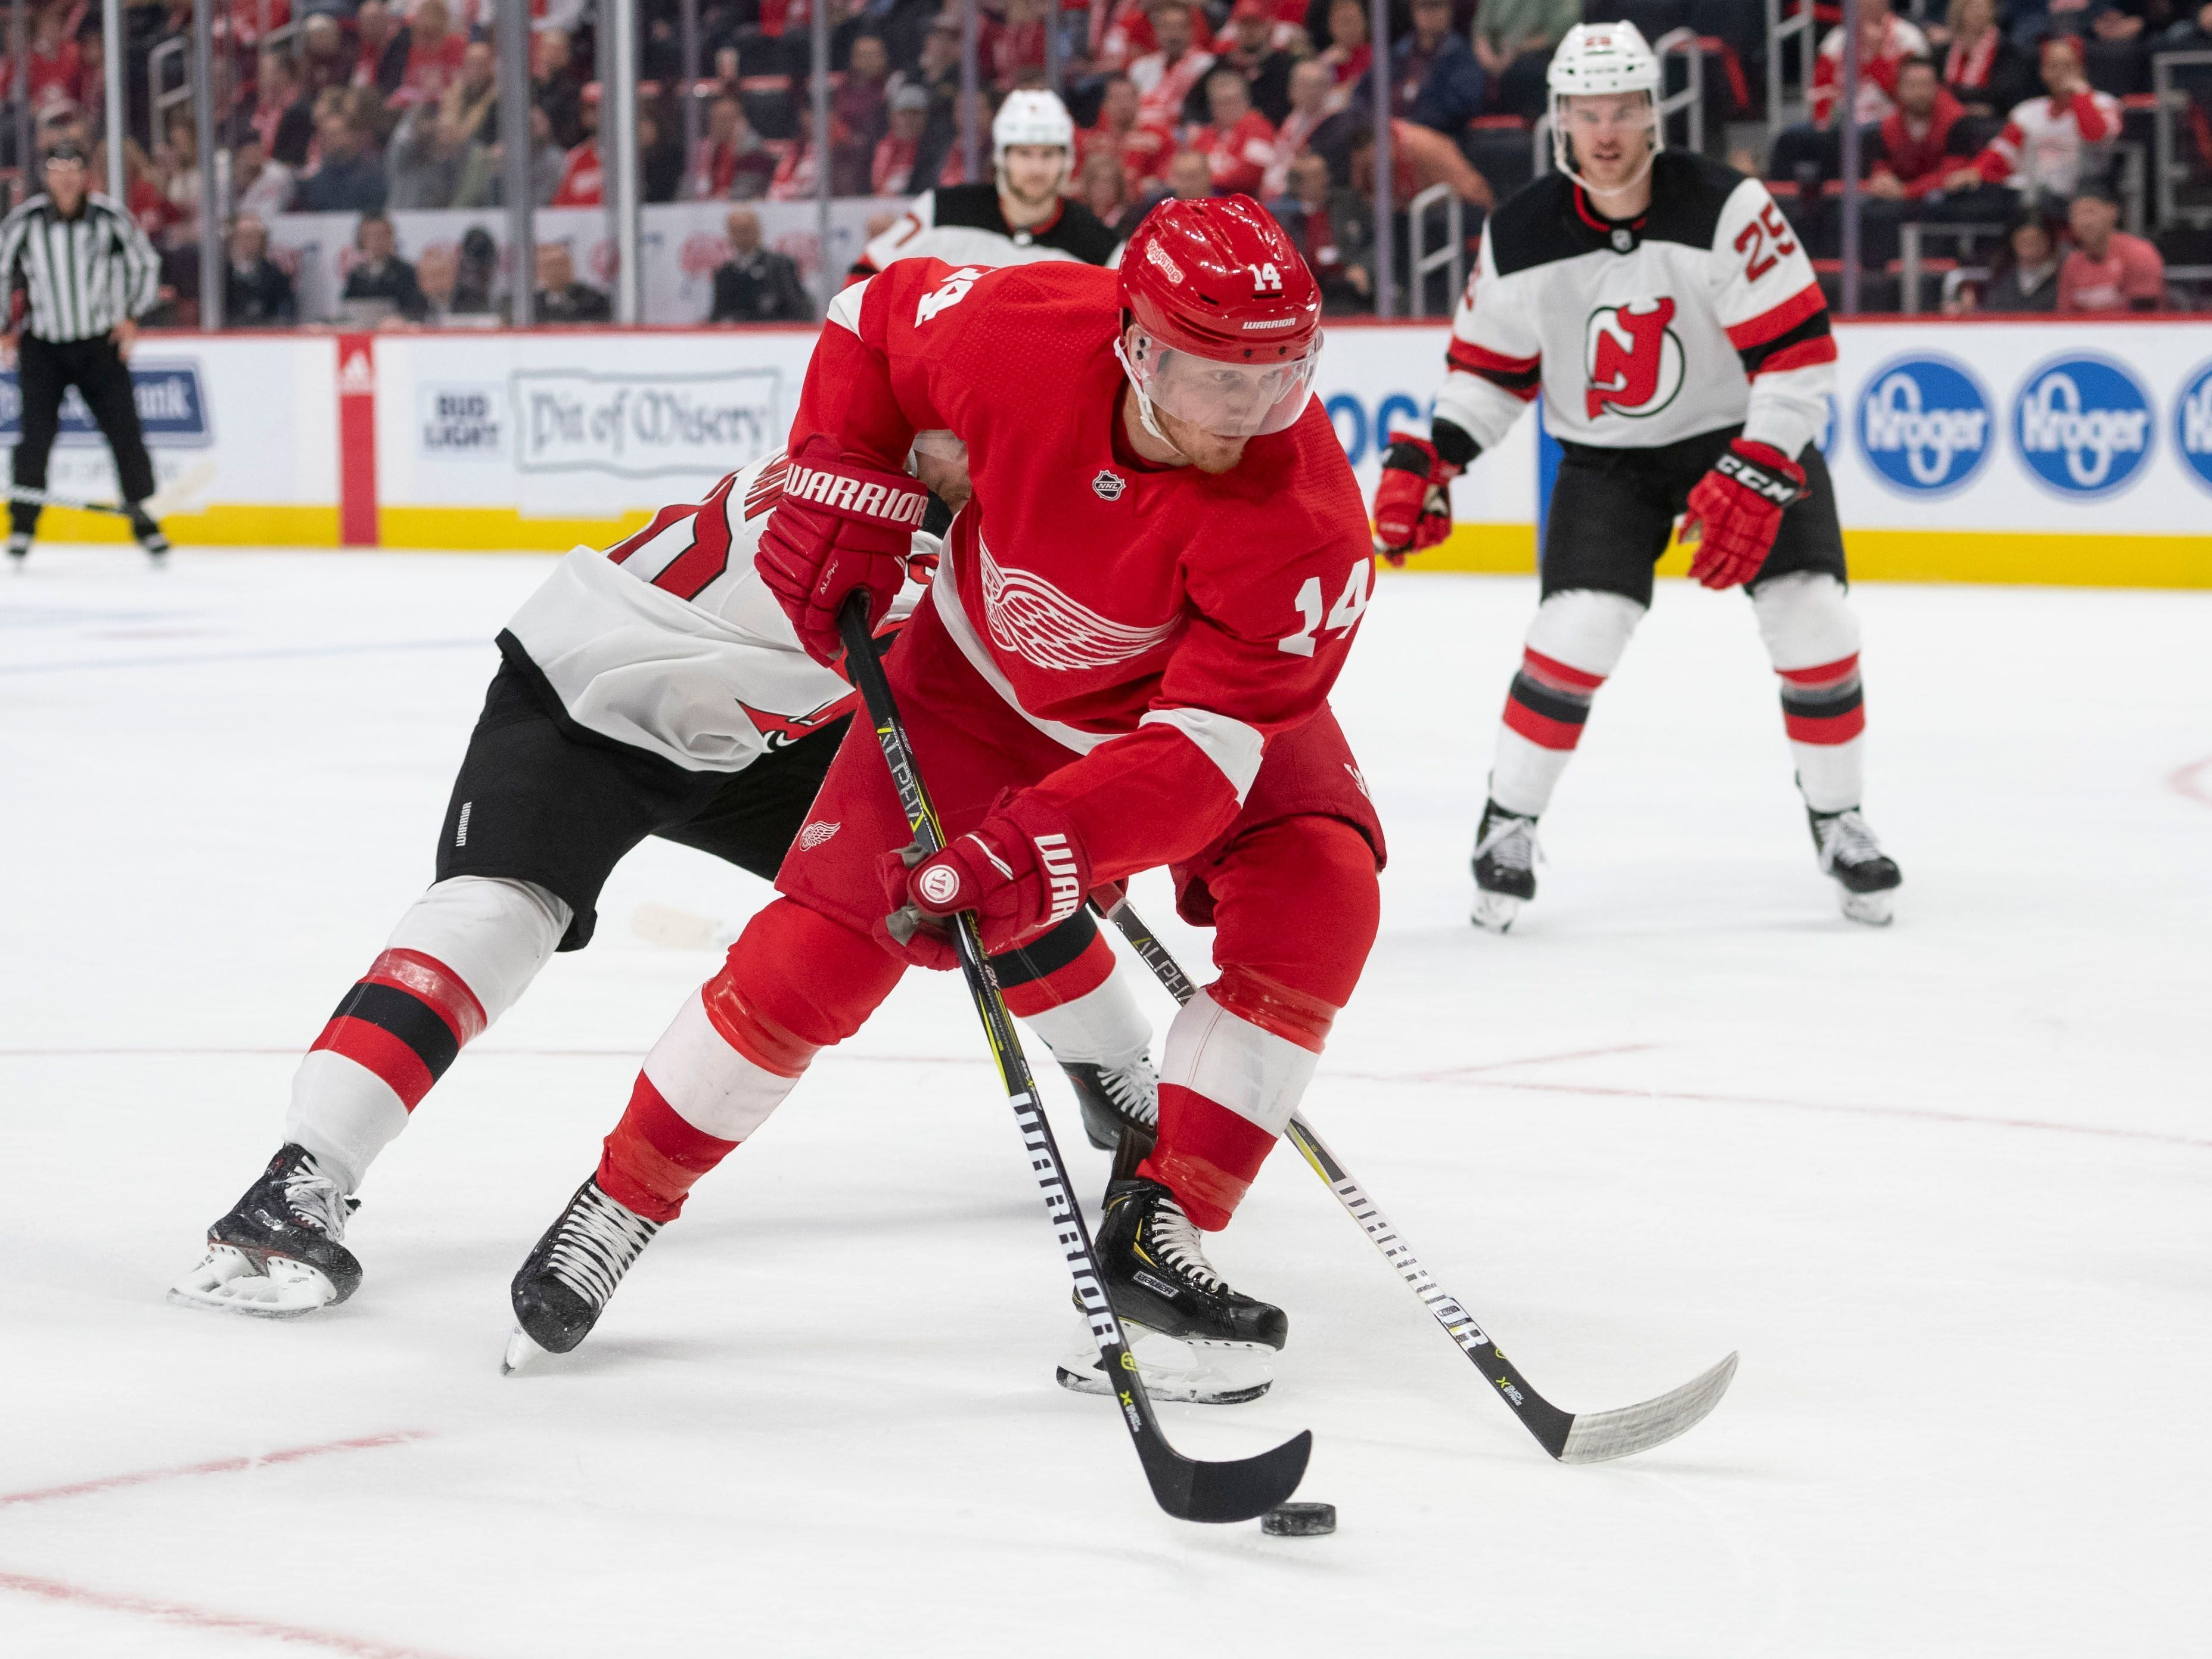 8. Gustav Nyquist, RW, Detroit: It'll be interesting to see how many teams come calling on Nyquist, who is having a career year. The Wings may work to re-sign him for their veteran core going forward.